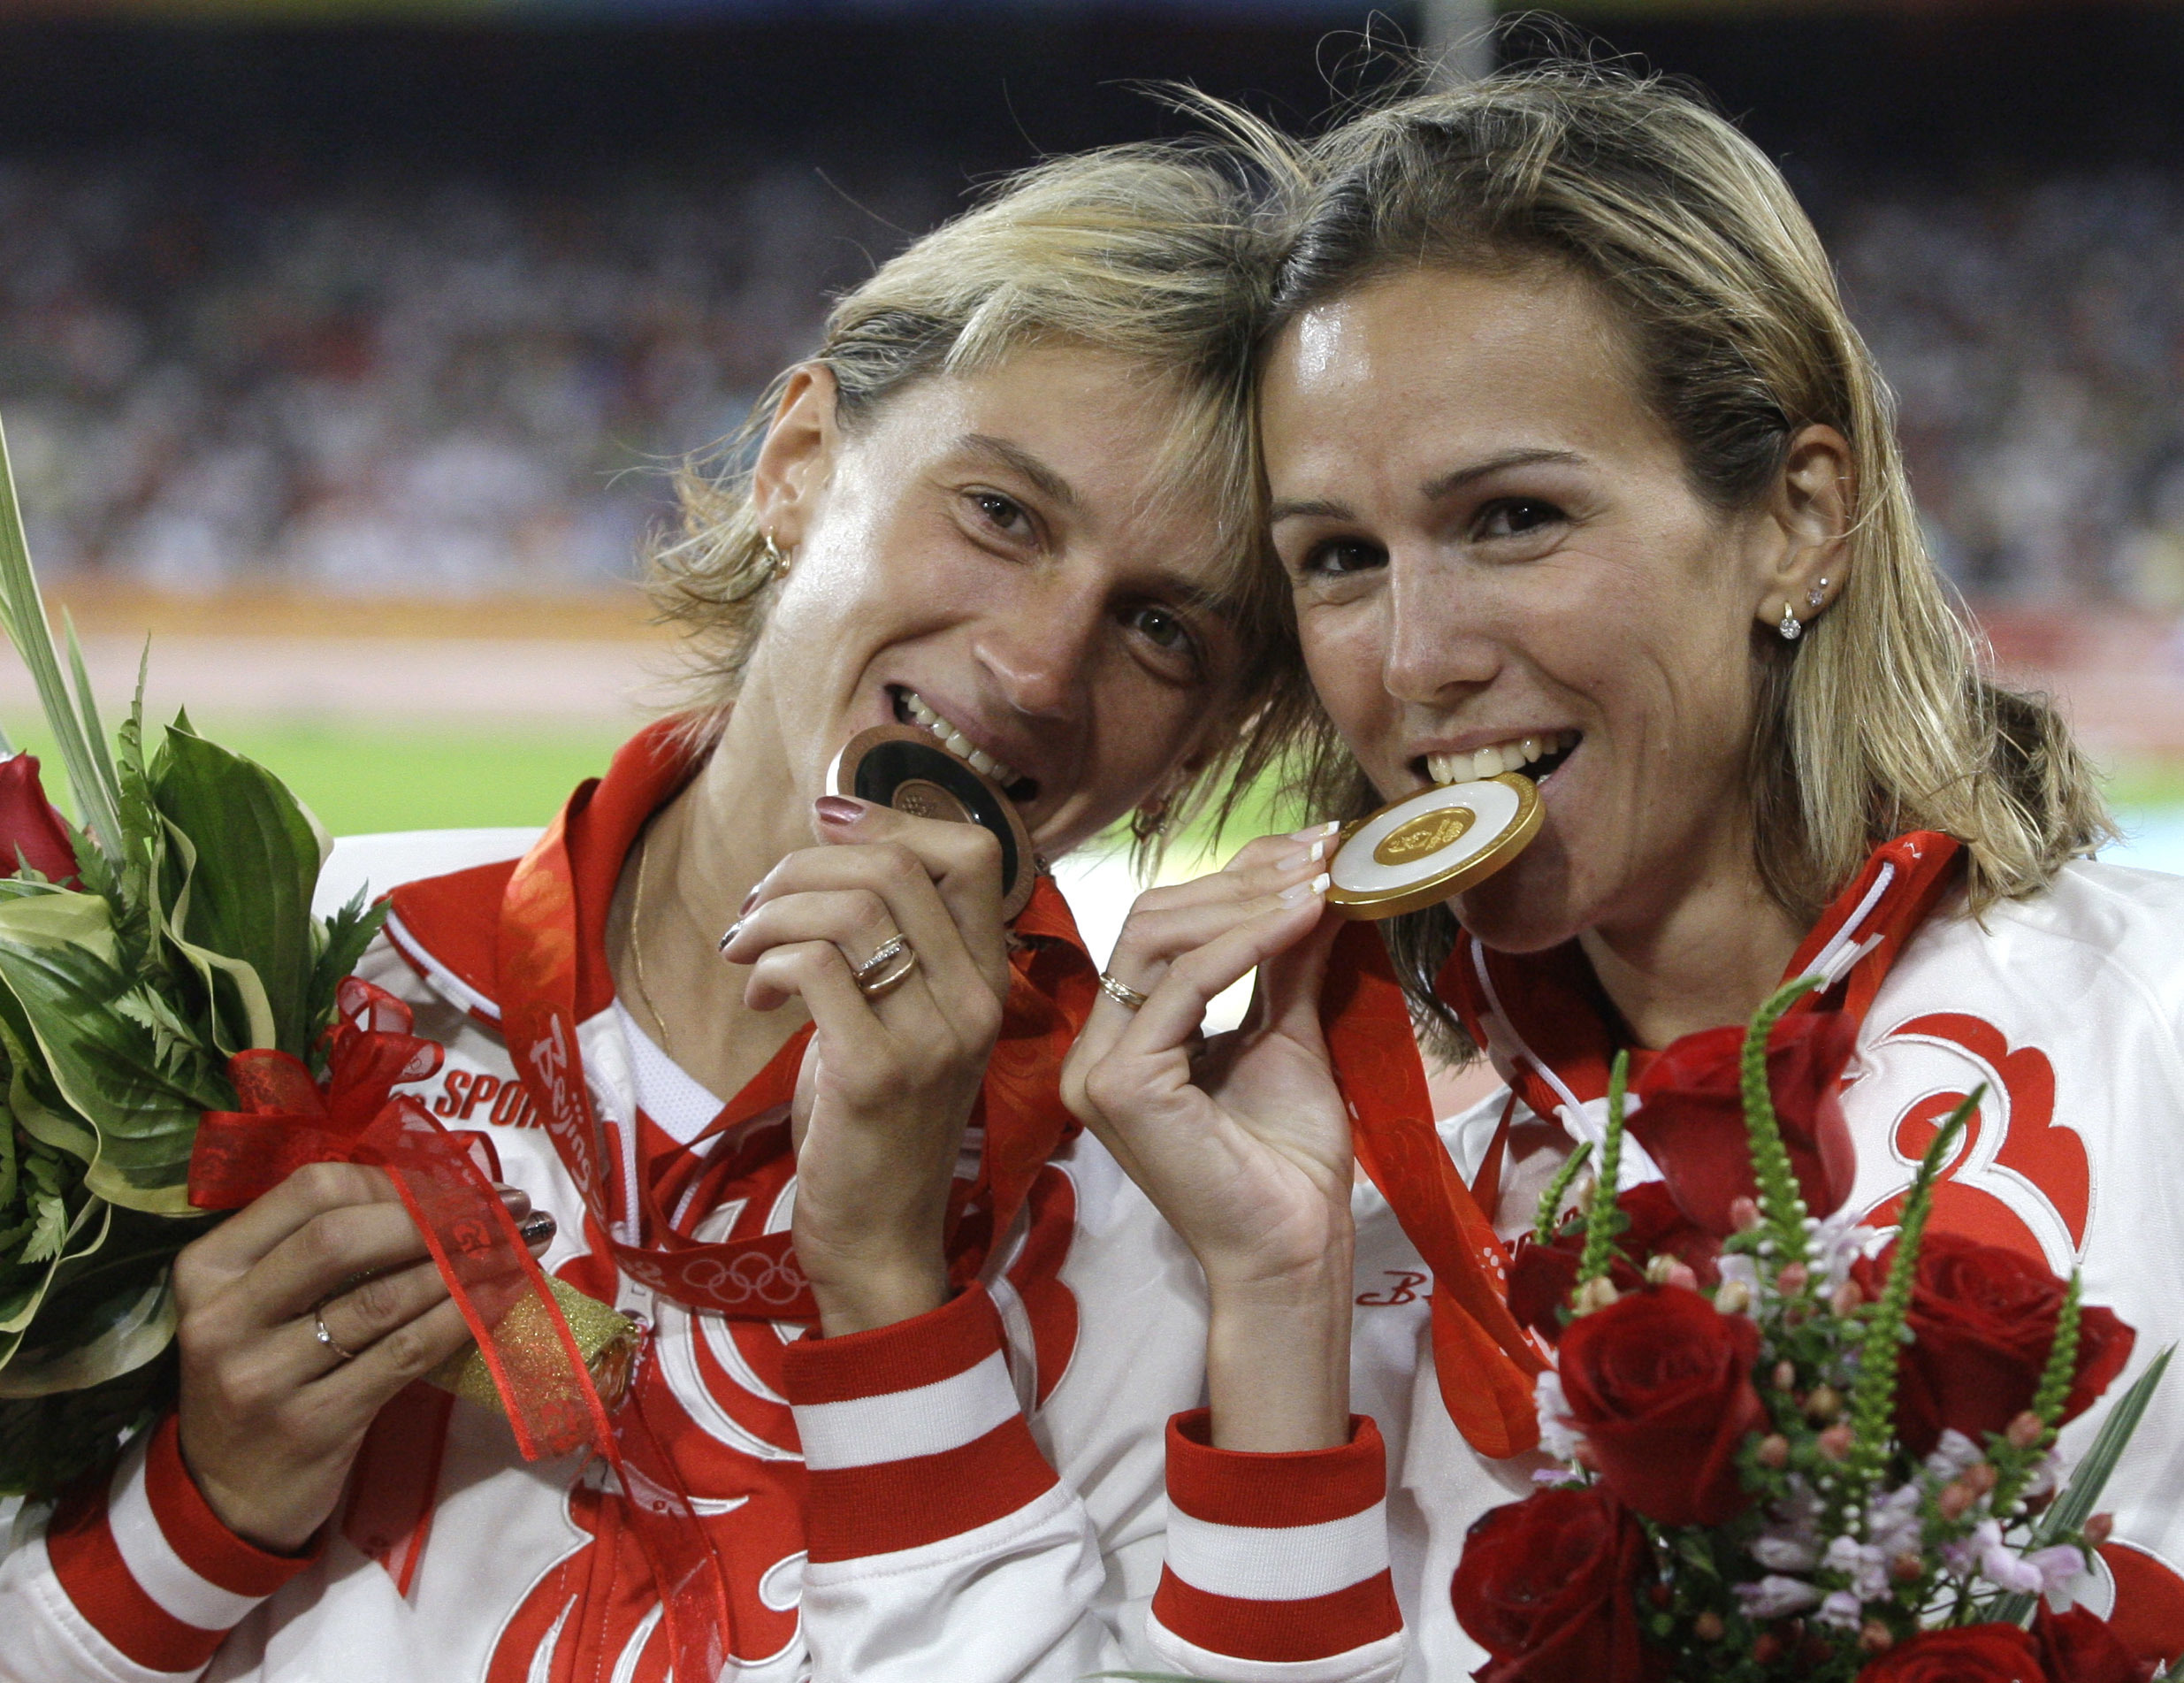 FILE - In this Sunday, Aug. 17, 2008 file photo, Russia's gold medal winner Gulnara Galkina-Samitova, left, and bronze medal winner Ekaterina Volkova bite their medals after the women's 3000-meter steeplechase at the Beijing 2008 Olympics in Beijing. Nine